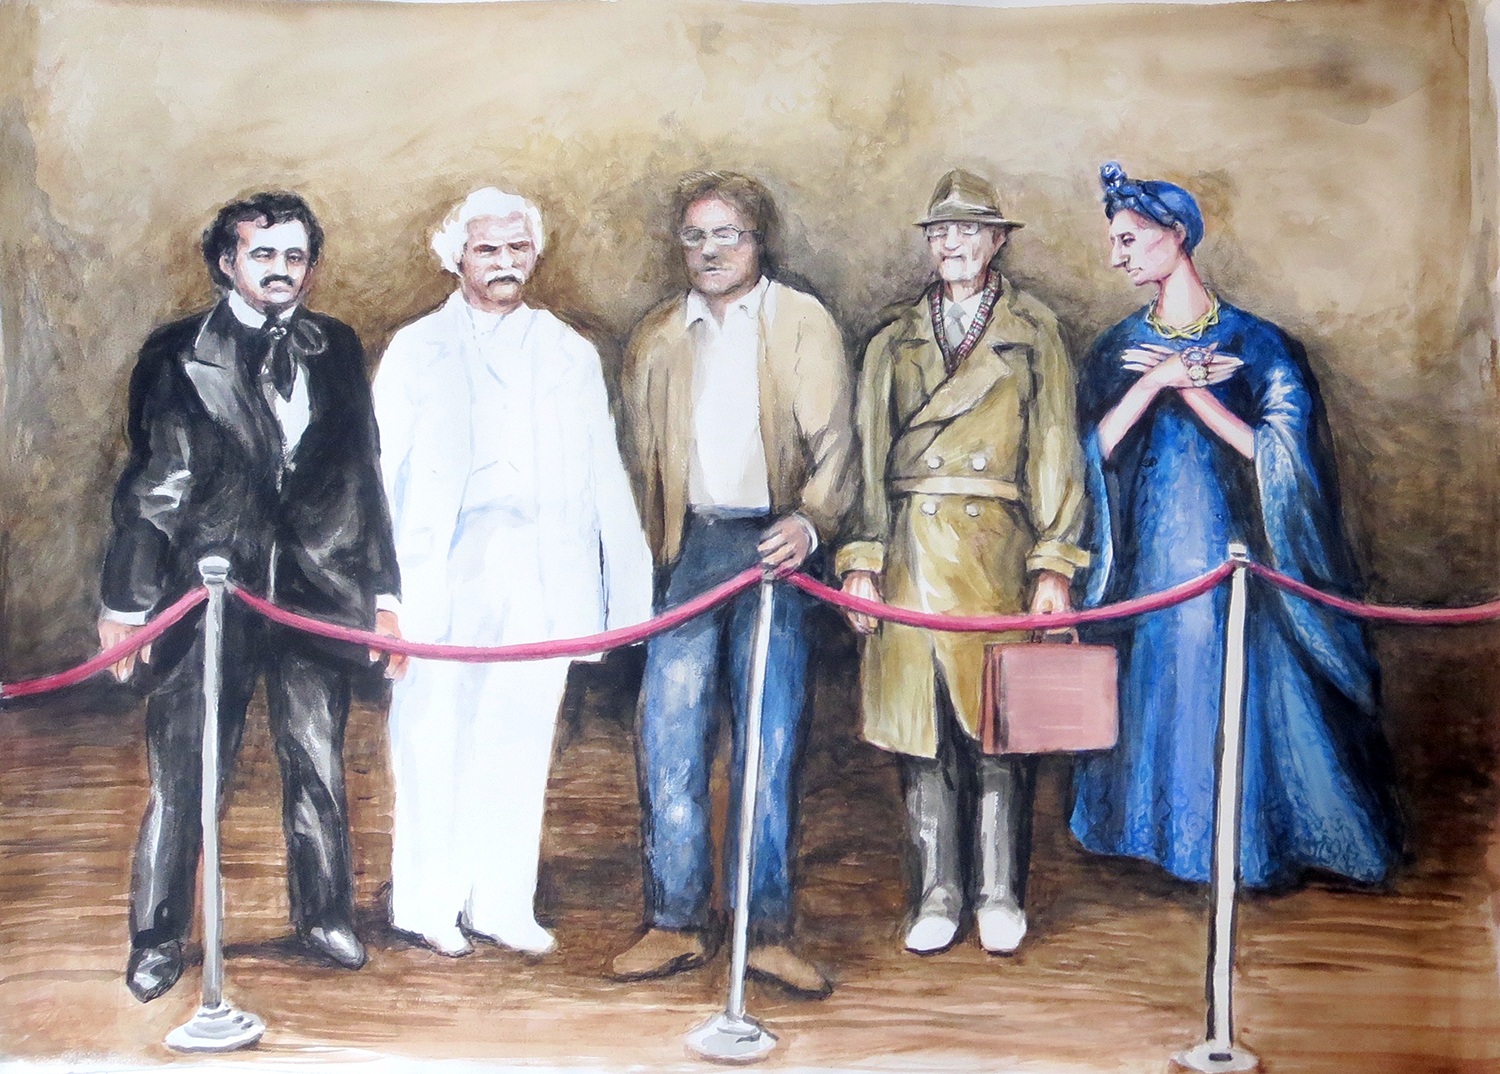 The Authors (Edgar Allen Poe, Mark Twain, Stephen King, William Burroughs, Dame Edith Sitwell) (from the series Scenes from the Wax Museum)